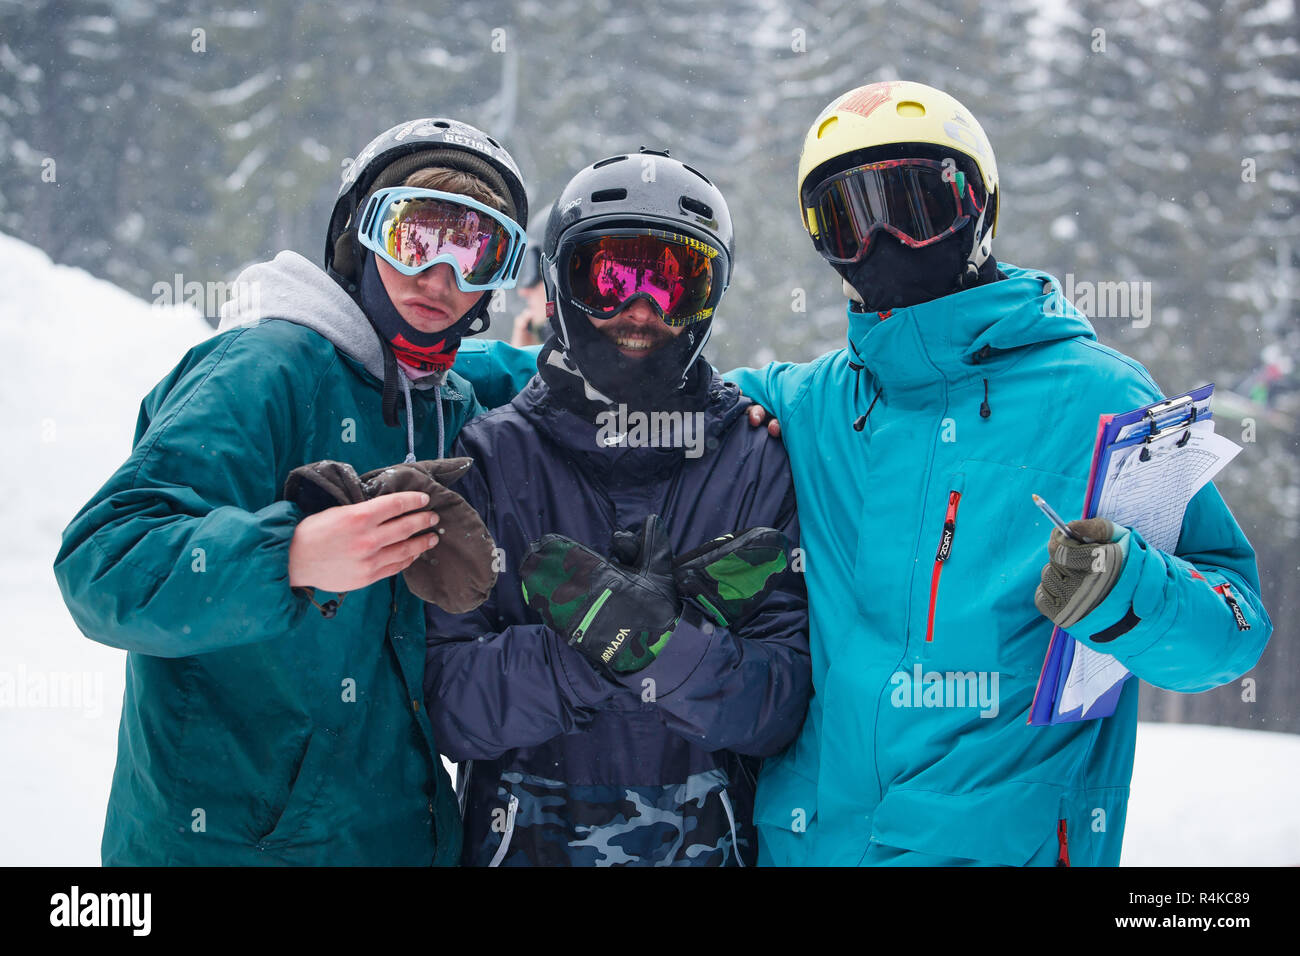 BUKOVEL,UKRAINE-19 MARCH,2018: Winter action sports festival in snow park.Young people compete in big air snowboarding & extreme skiing.Group of athle - Stock Image